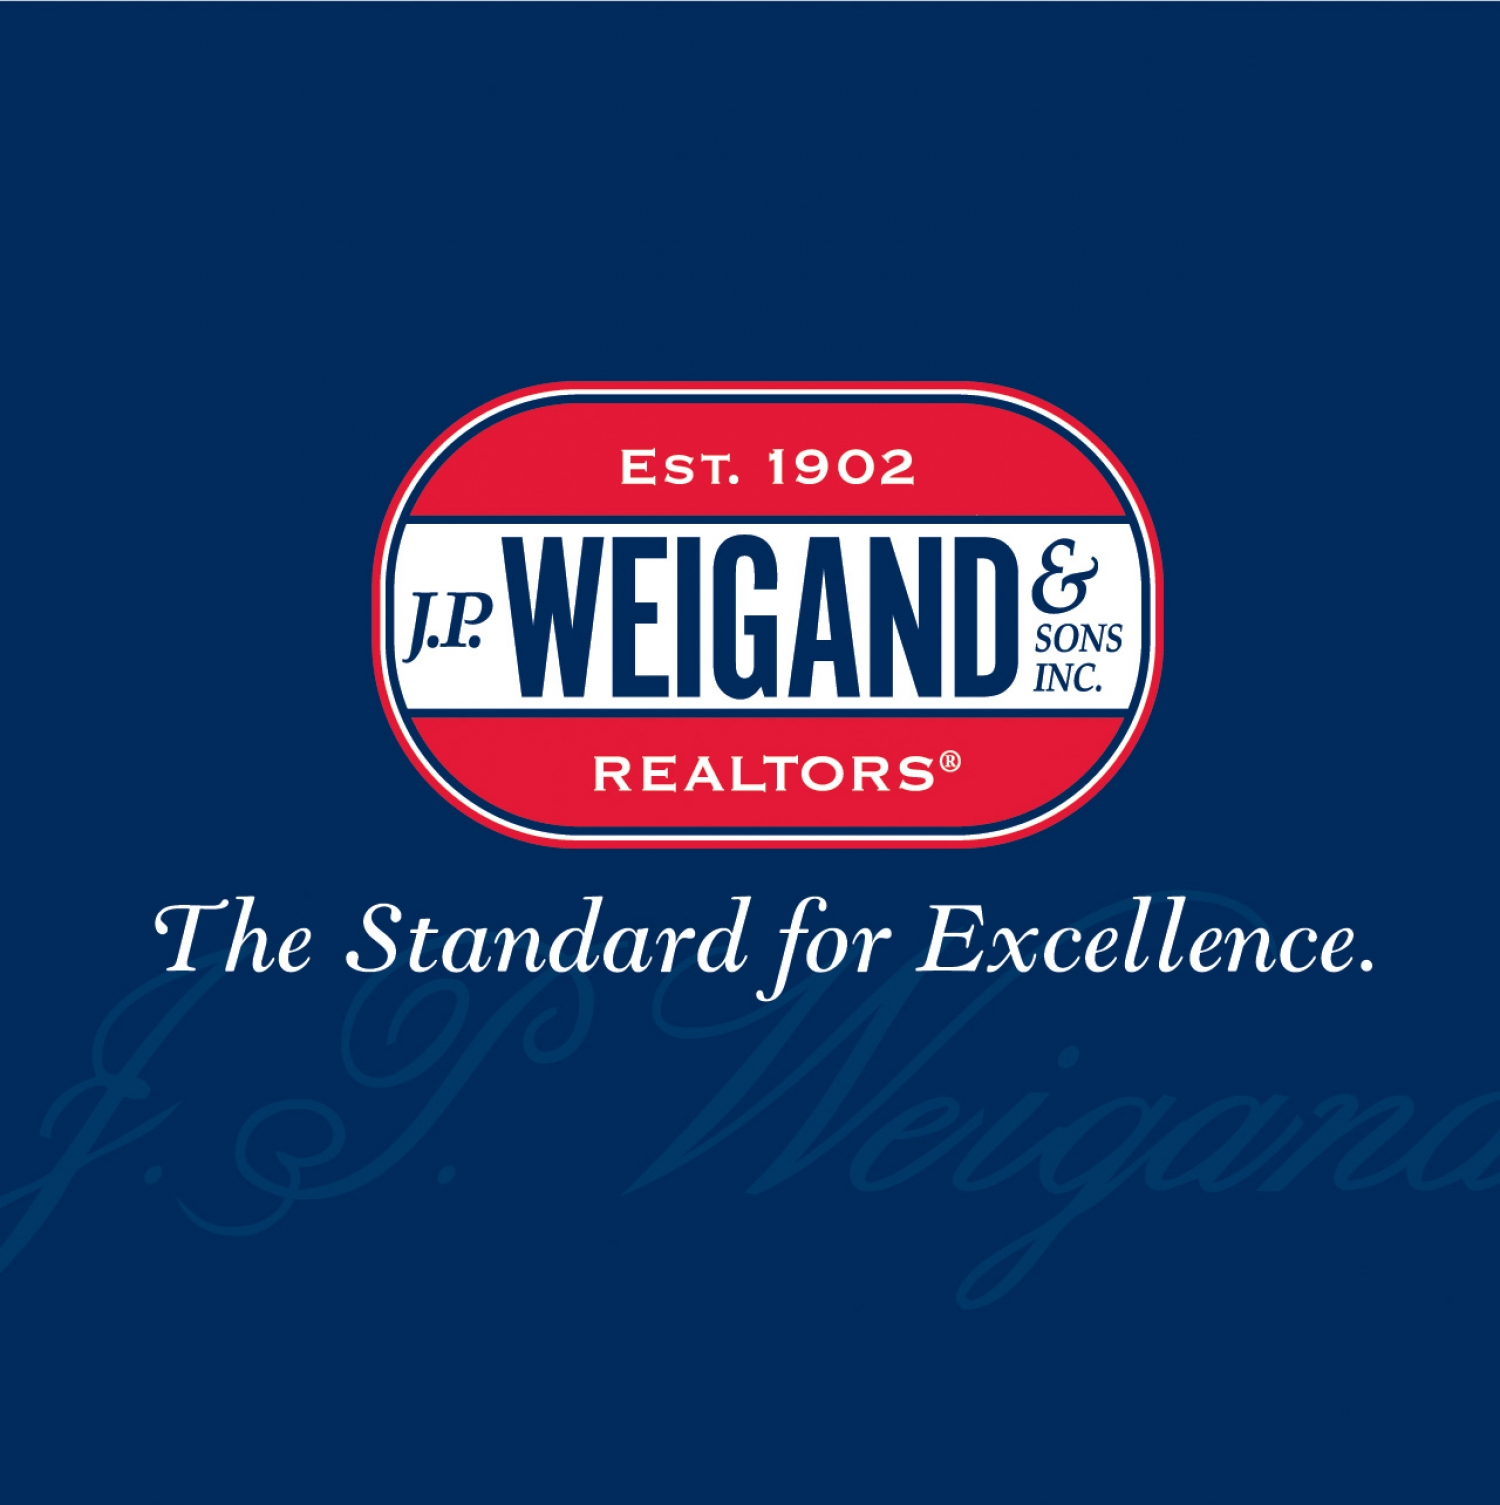 J.P. Weigand & Sons